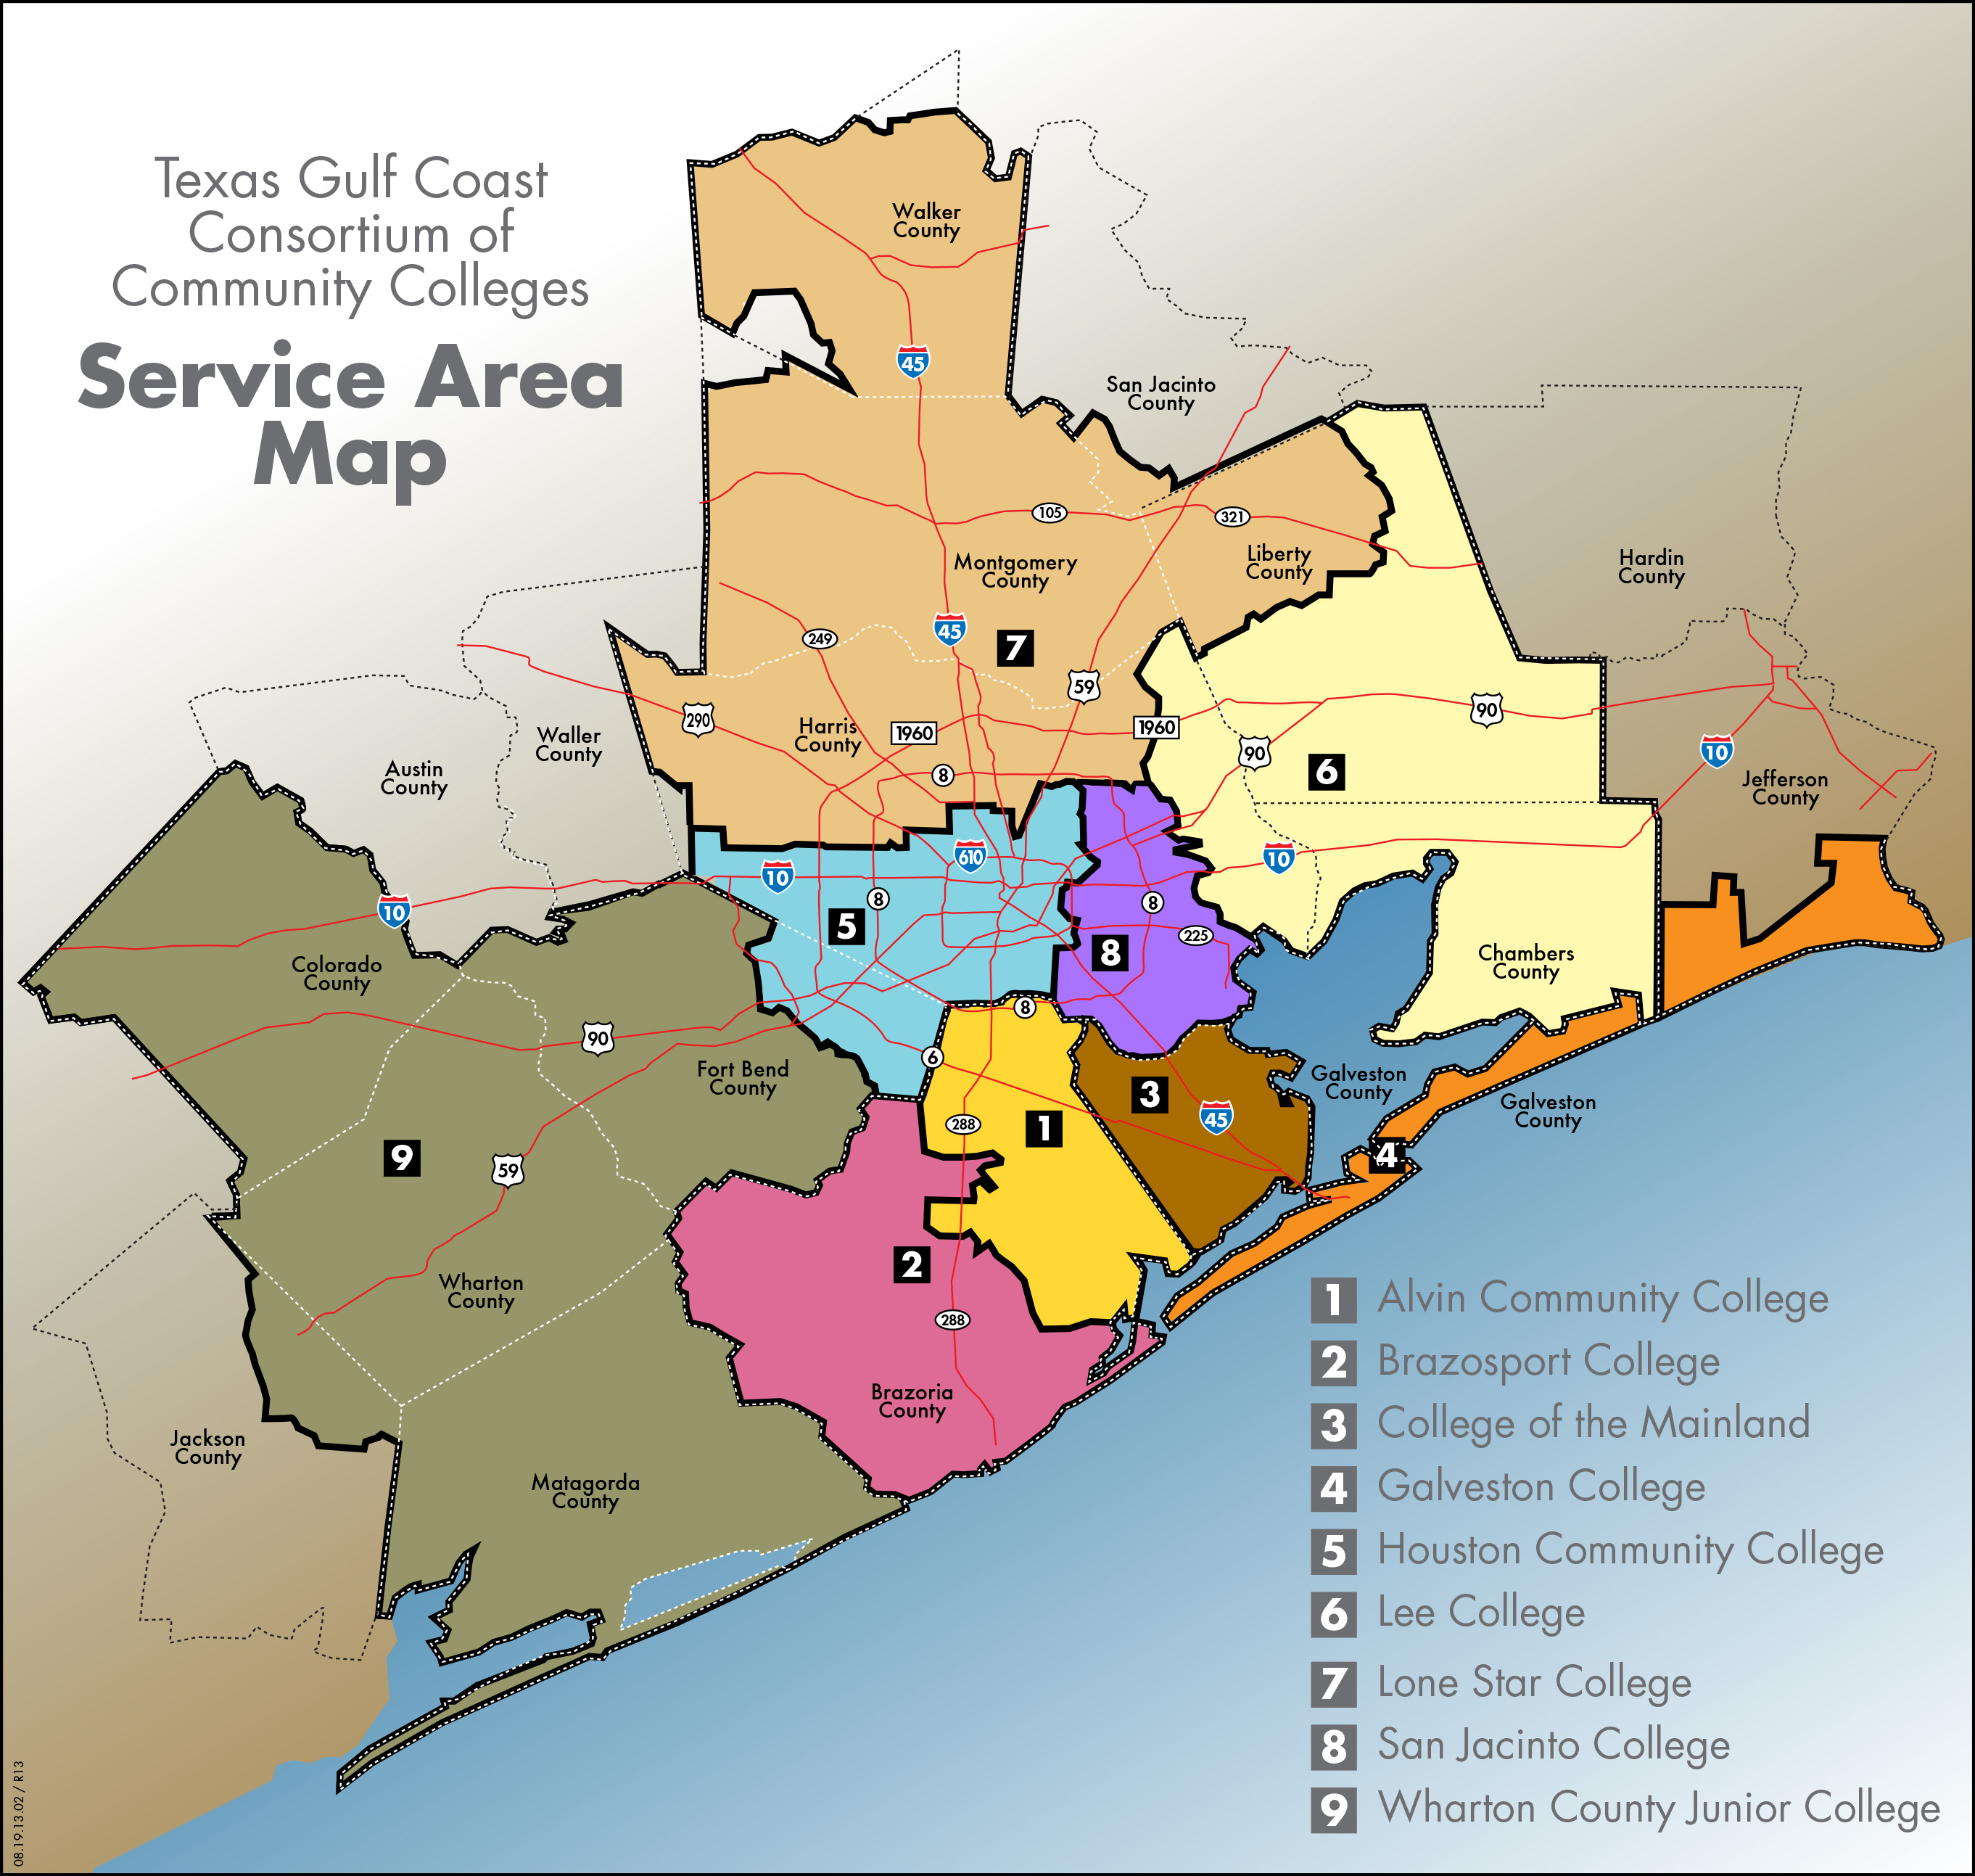 Map of Community College Service Areas by County